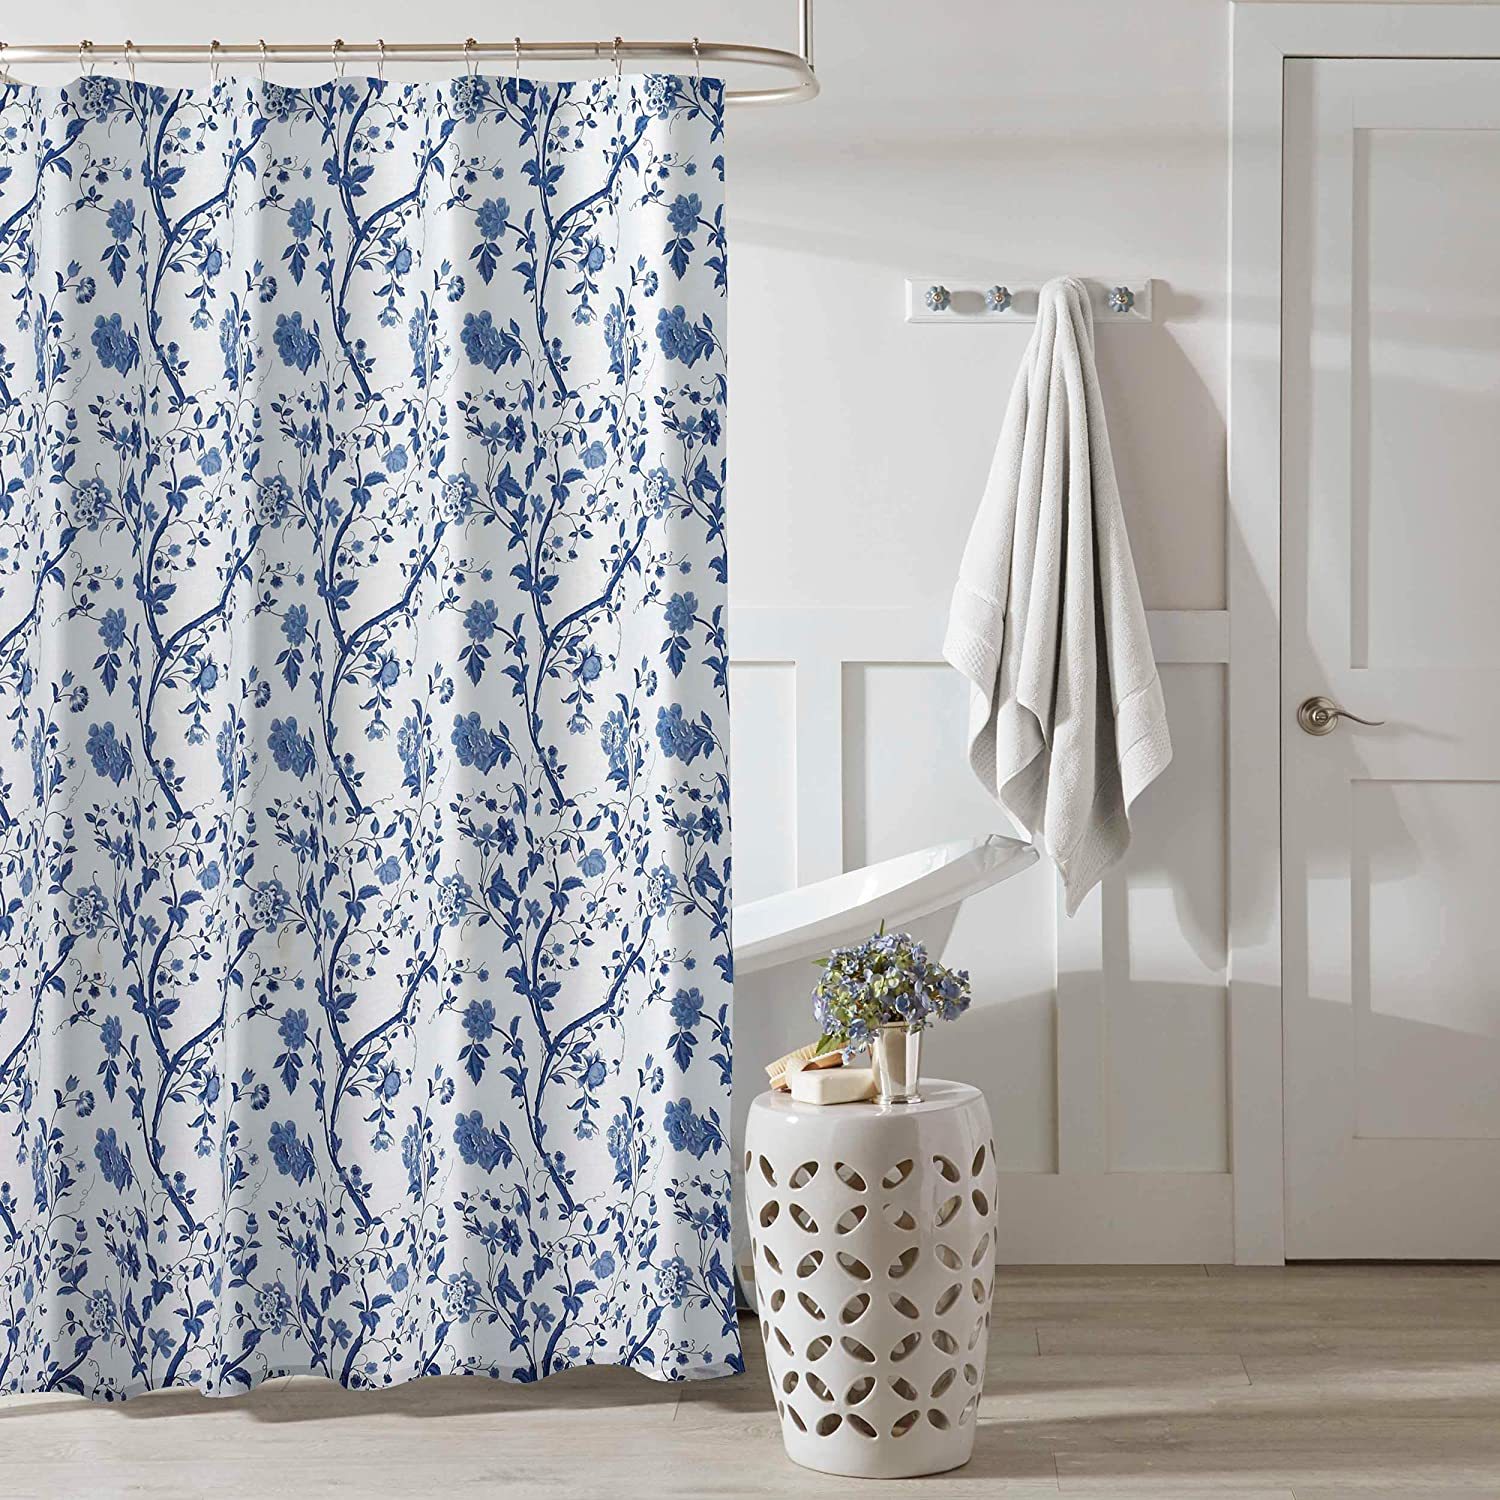 Amazon Com Laura Ashley Home Charlotte Collection Modern Heavyweight Shower Curtain Mildew Mold Resistant Anti Microbial Stylish Design 72 X 72 China Blue Home Kitchen